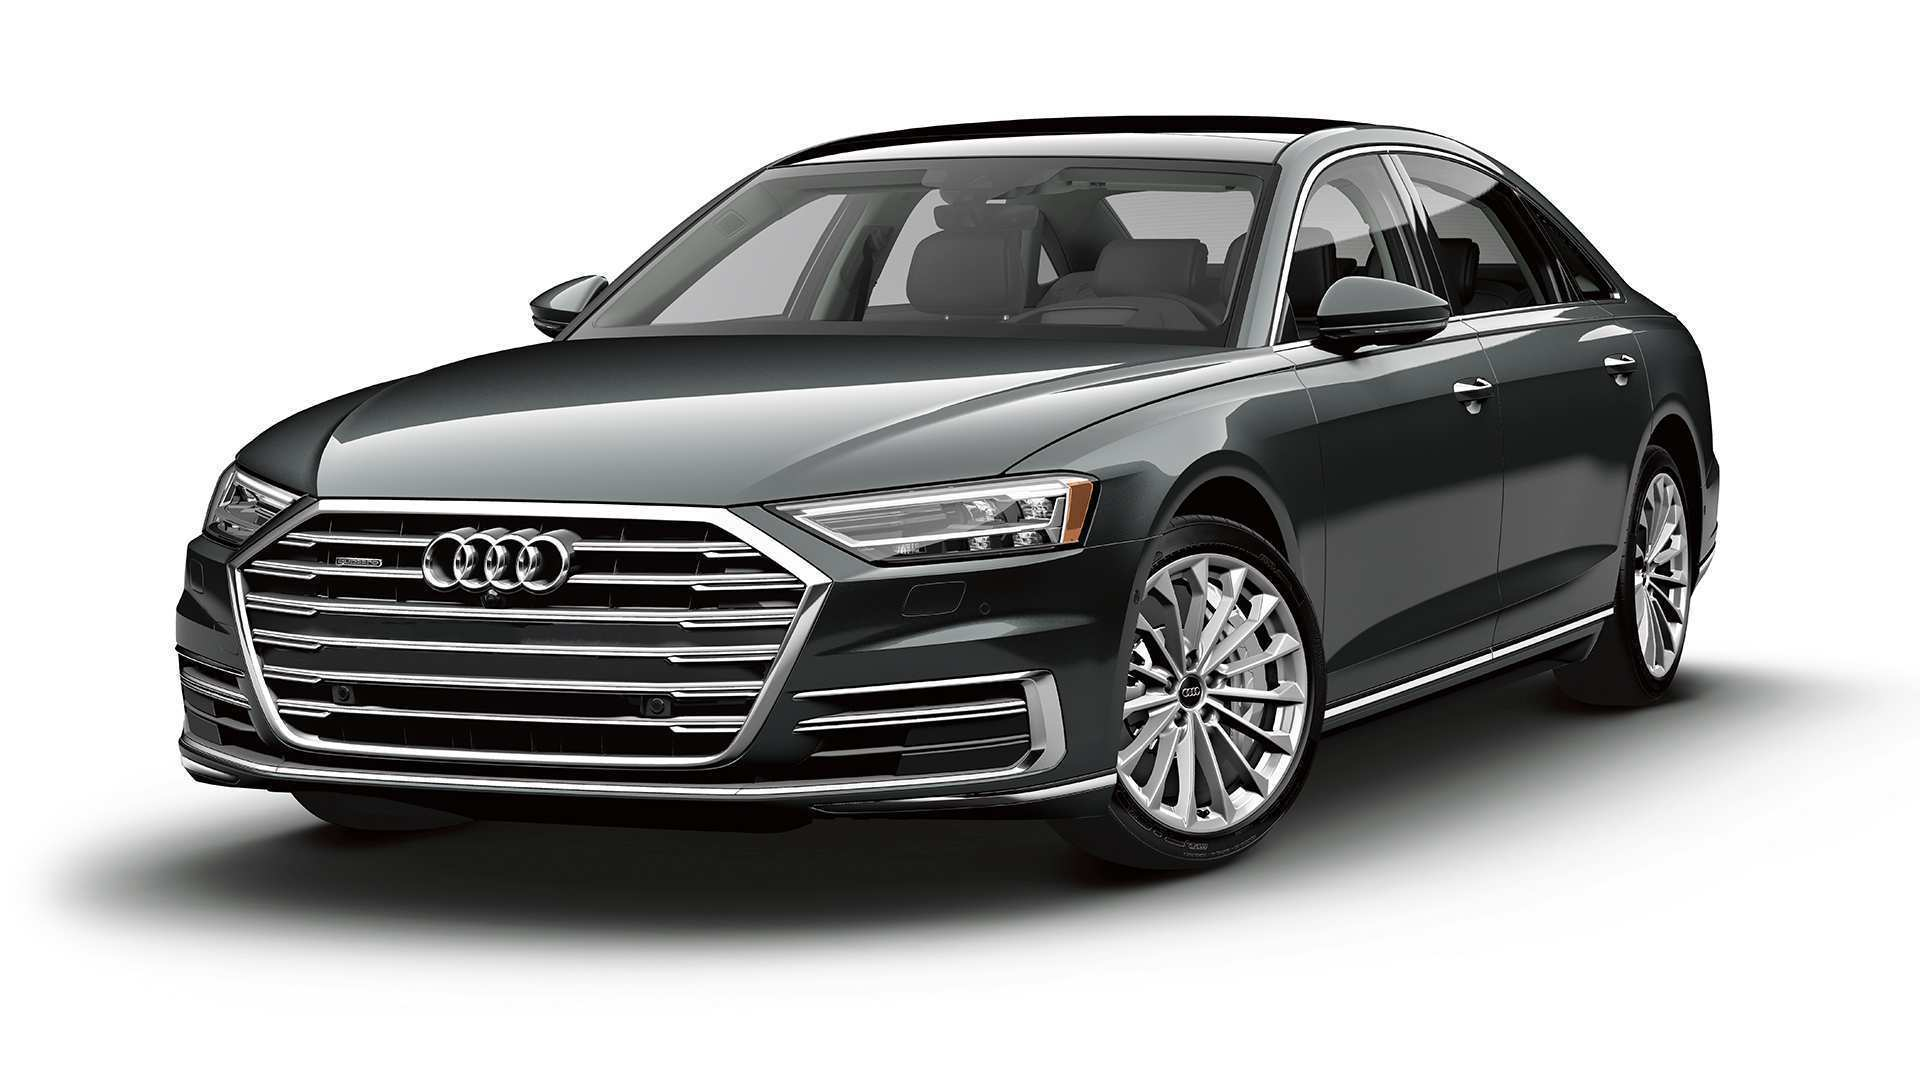 80 The 2020 Audi A8 L In Usa Specs